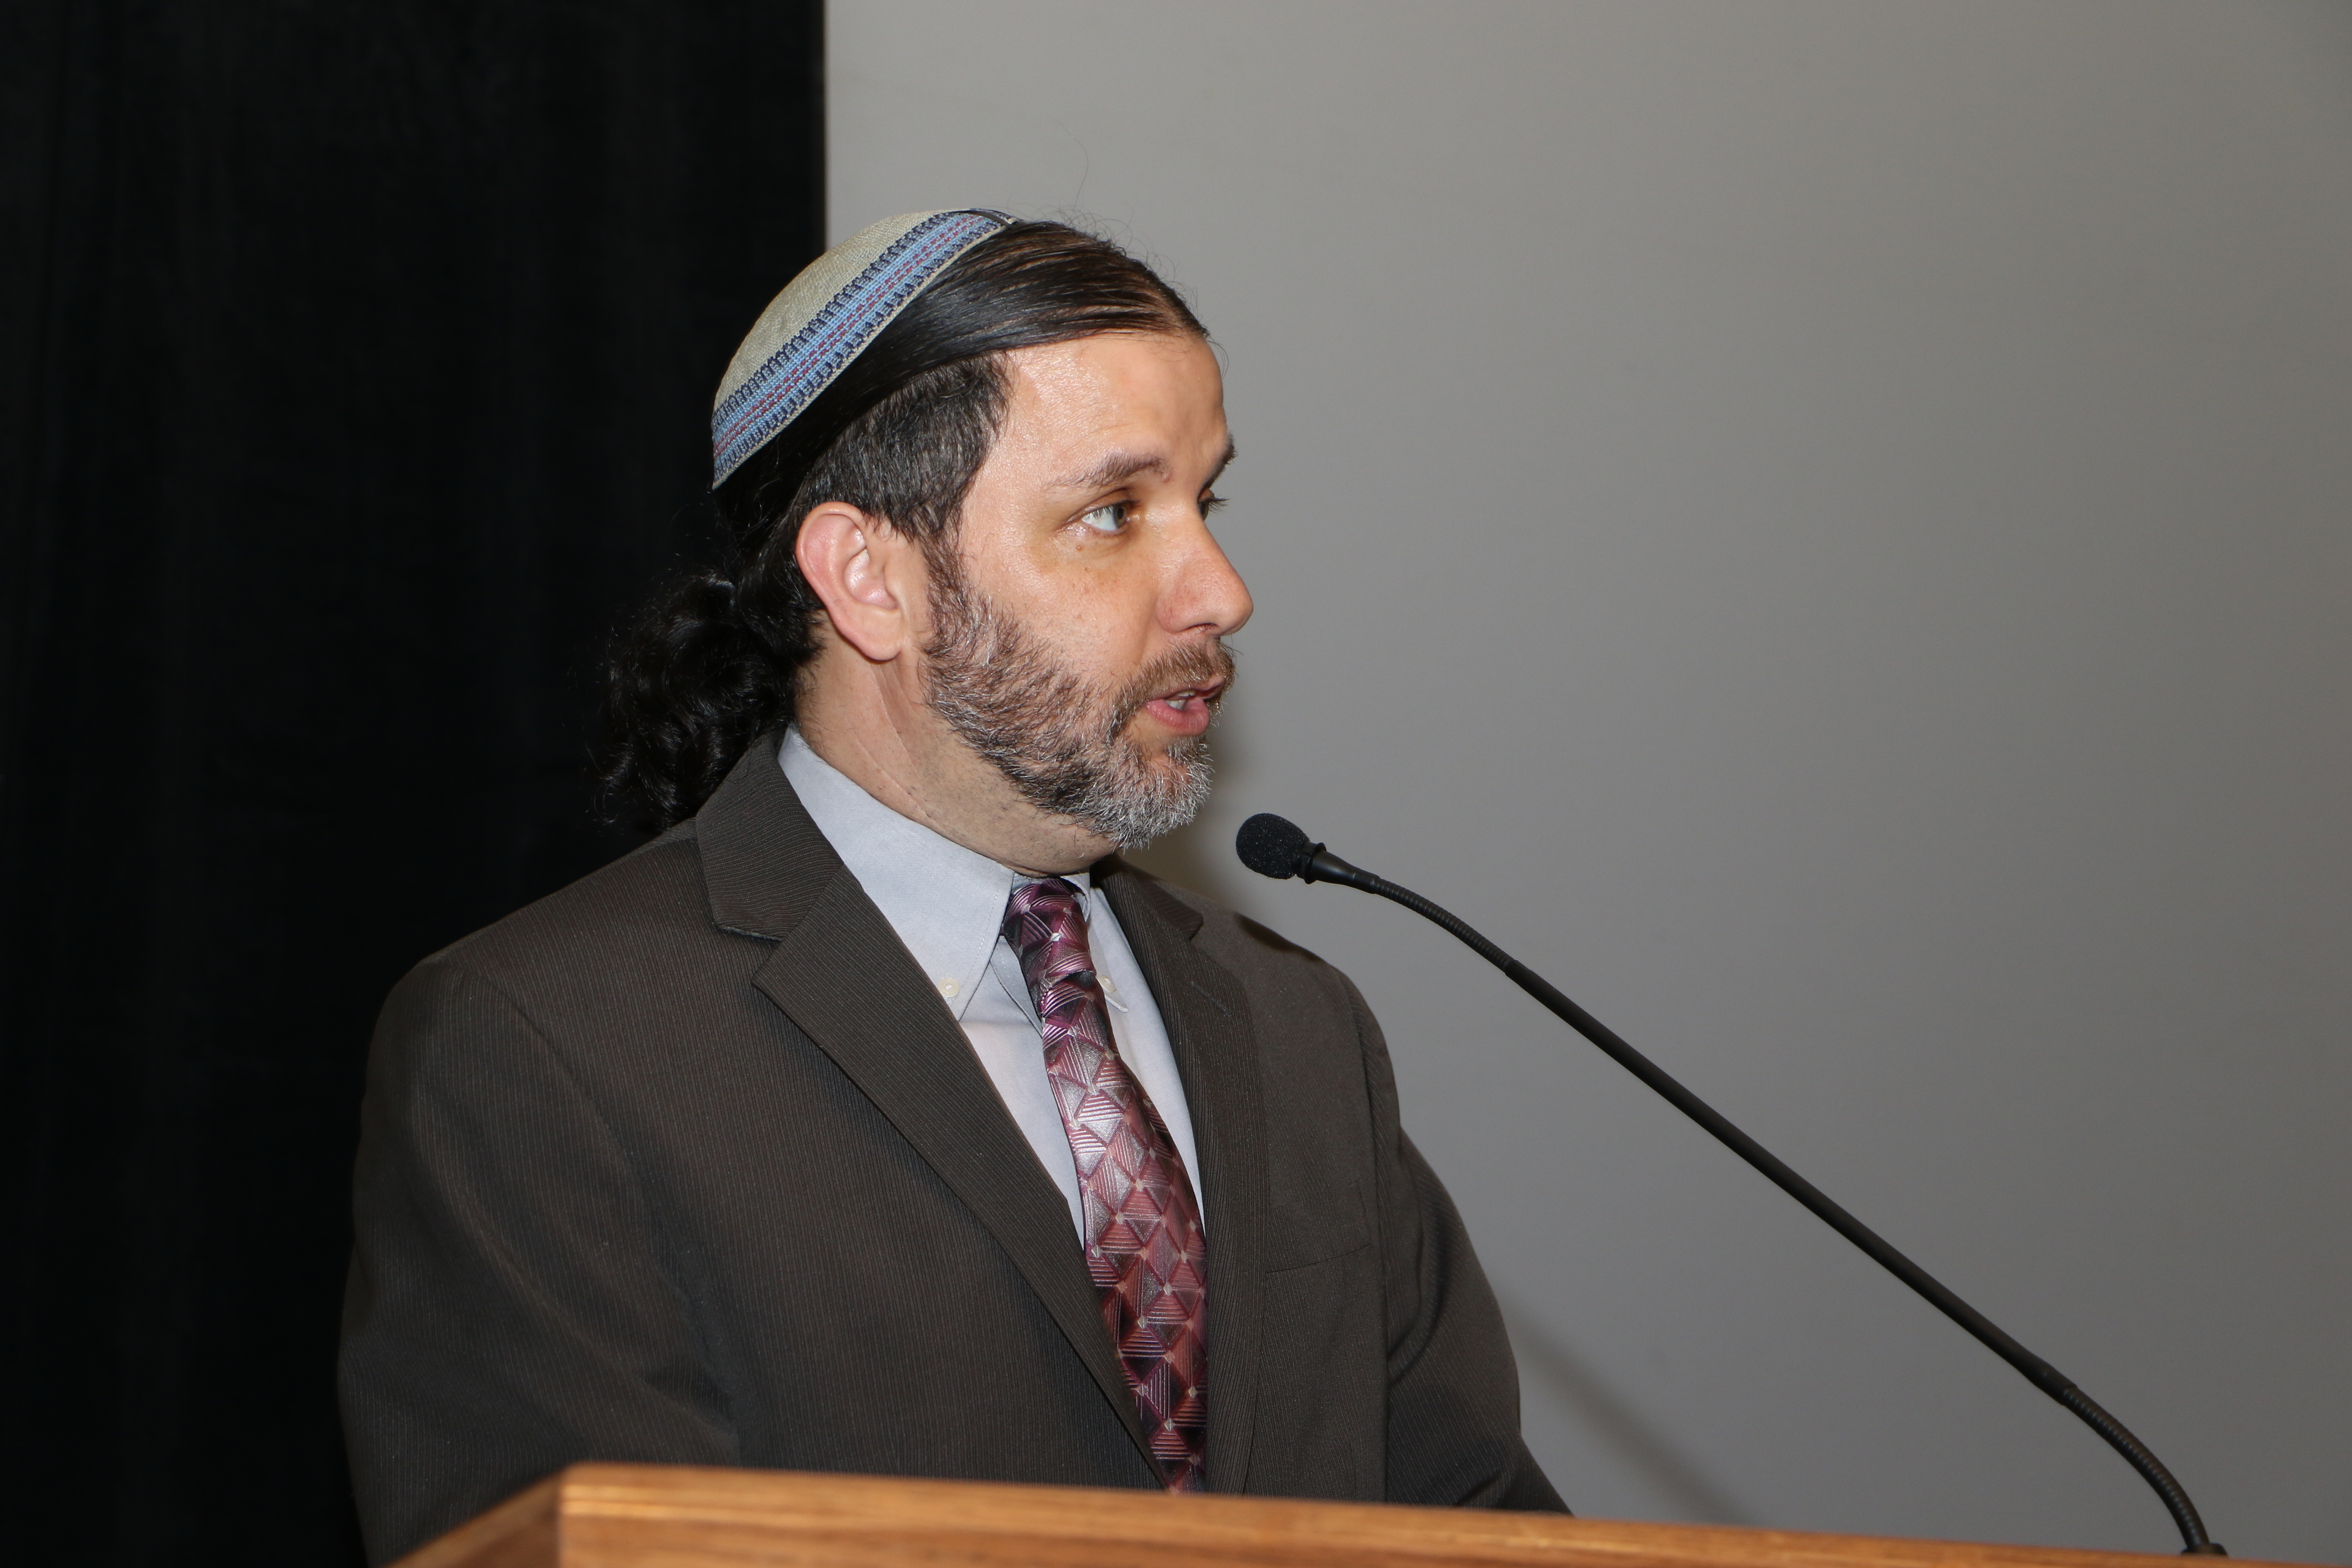 Rabbi Michael Werbow